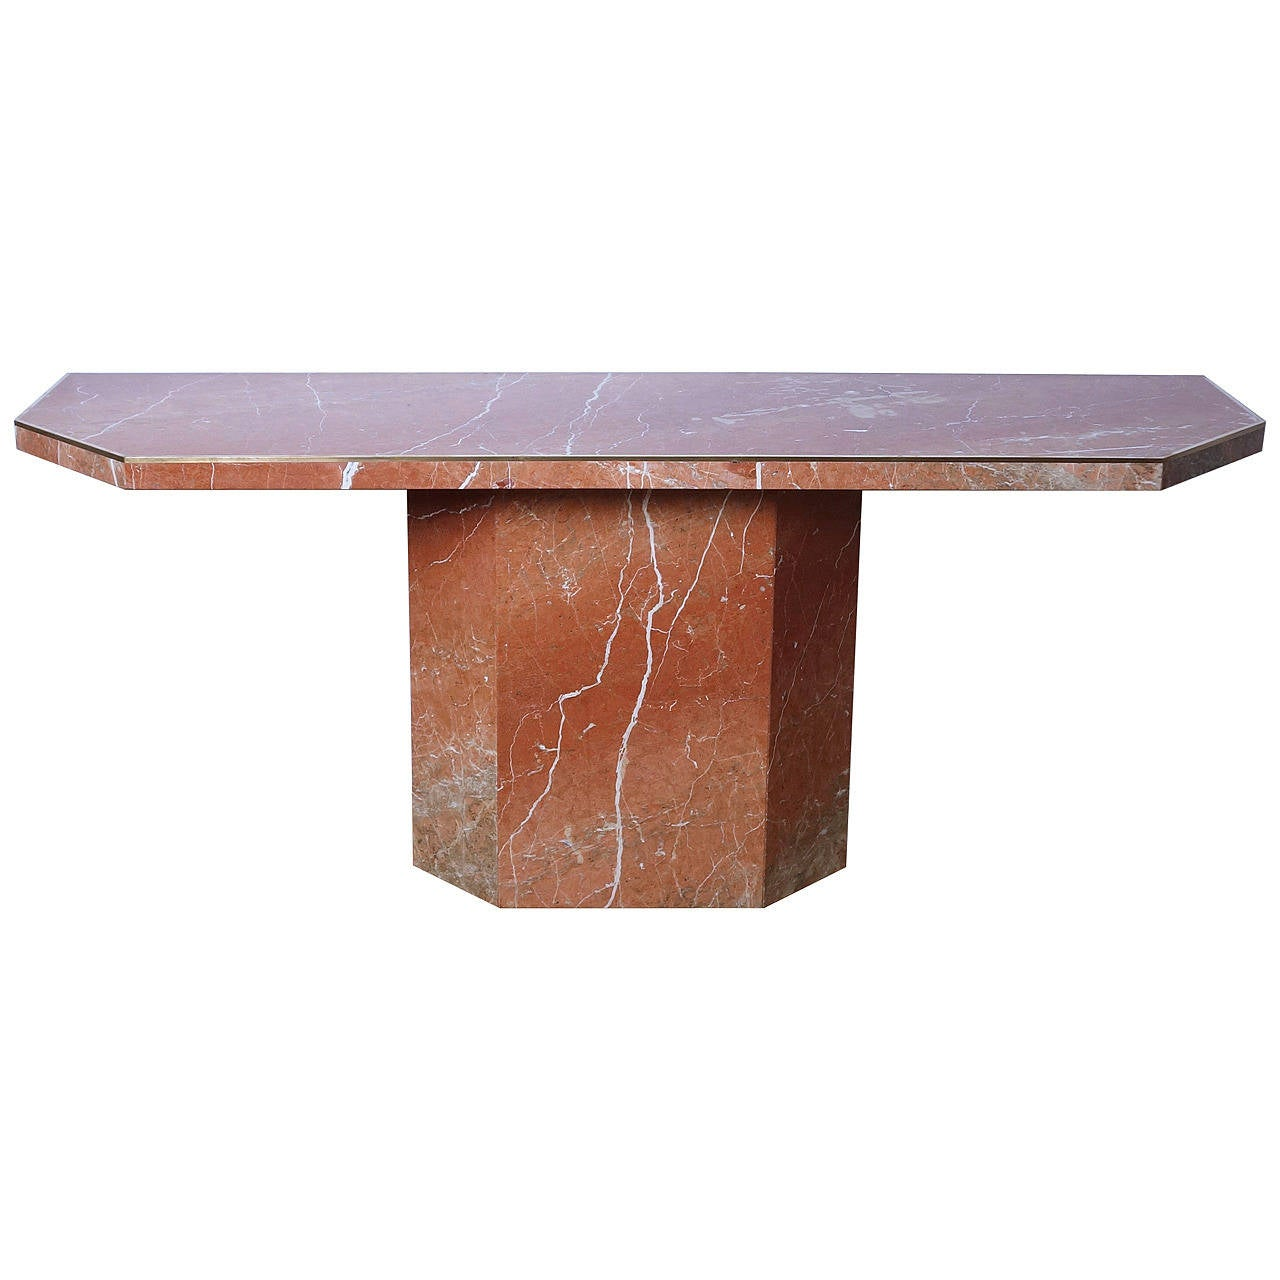 Large marble console table by willy rizzo at 1stdibs for Table willy rizzo